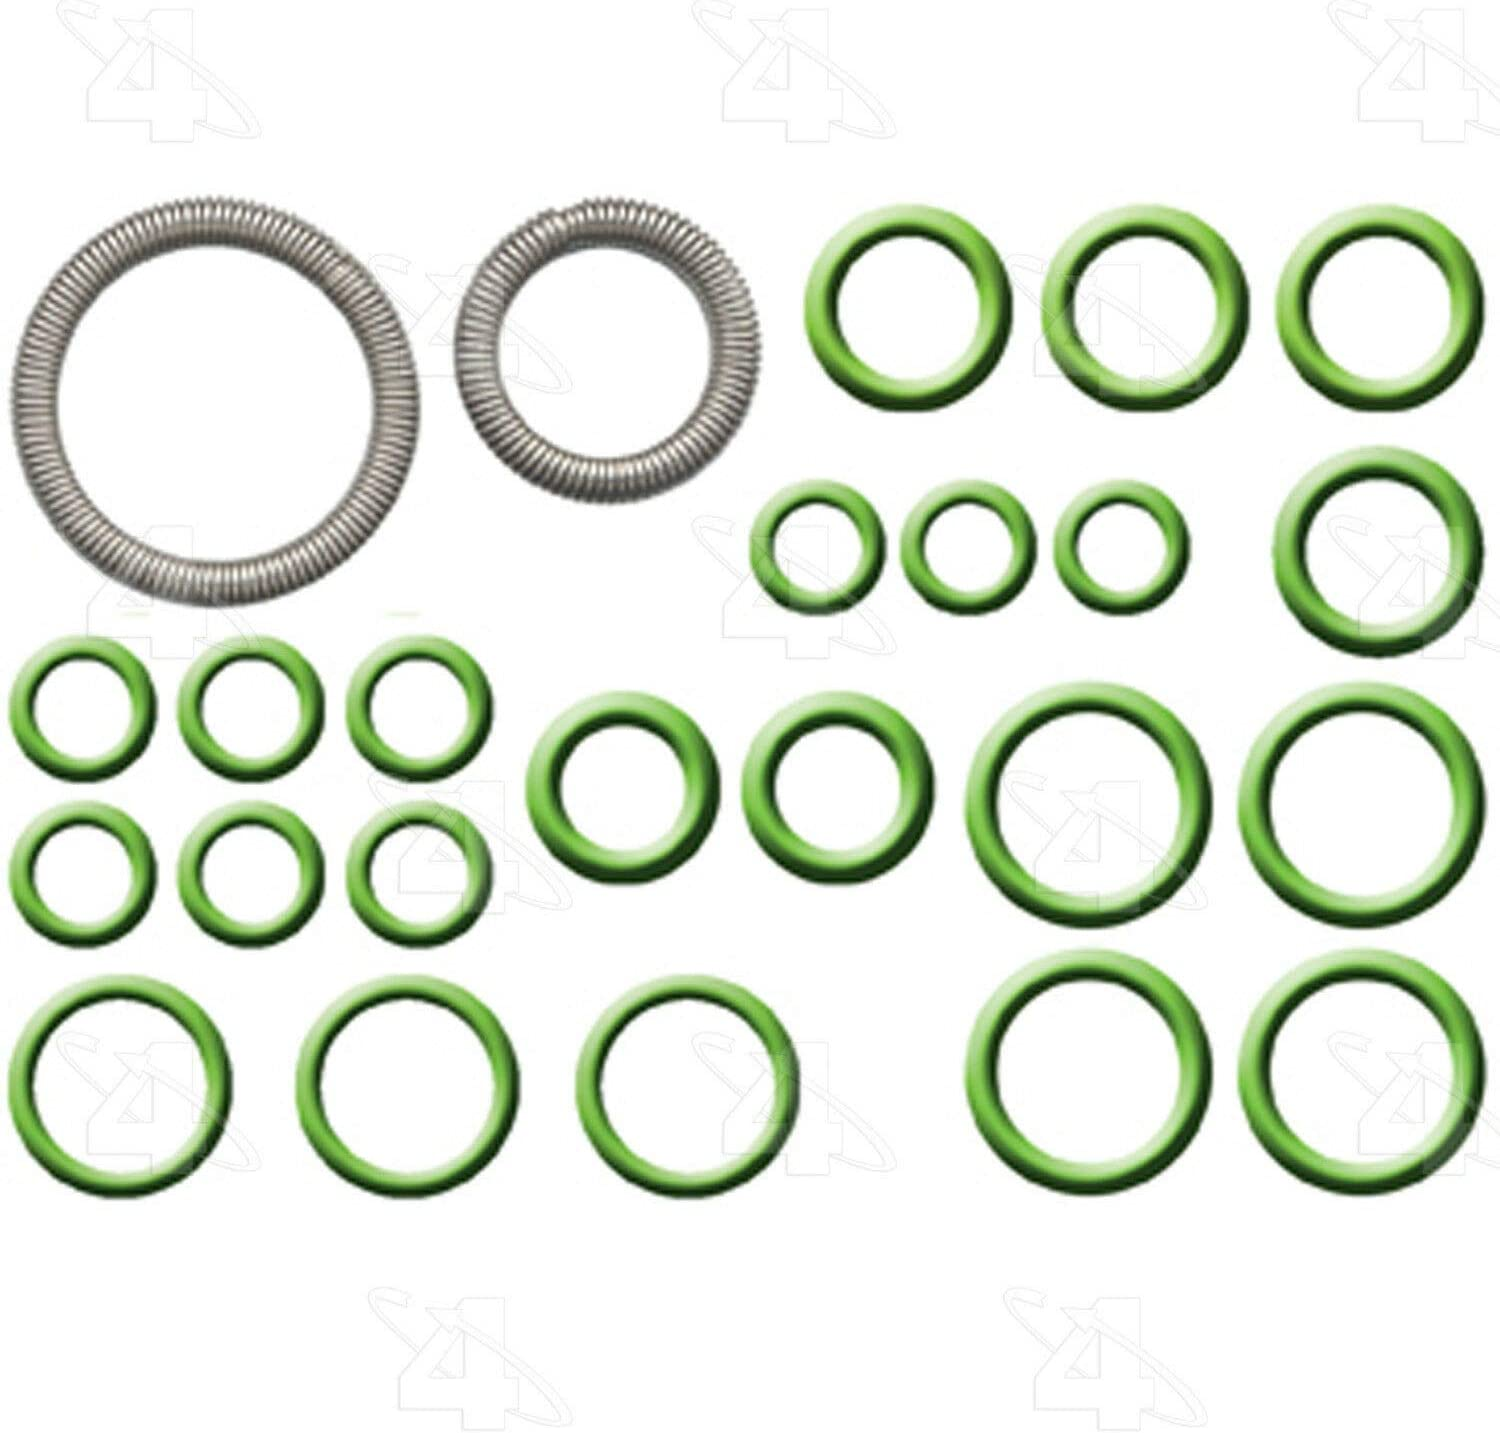 A//C System O-Ring and Gasket Kit-AC System Seal Kit 4 Seasons 26816